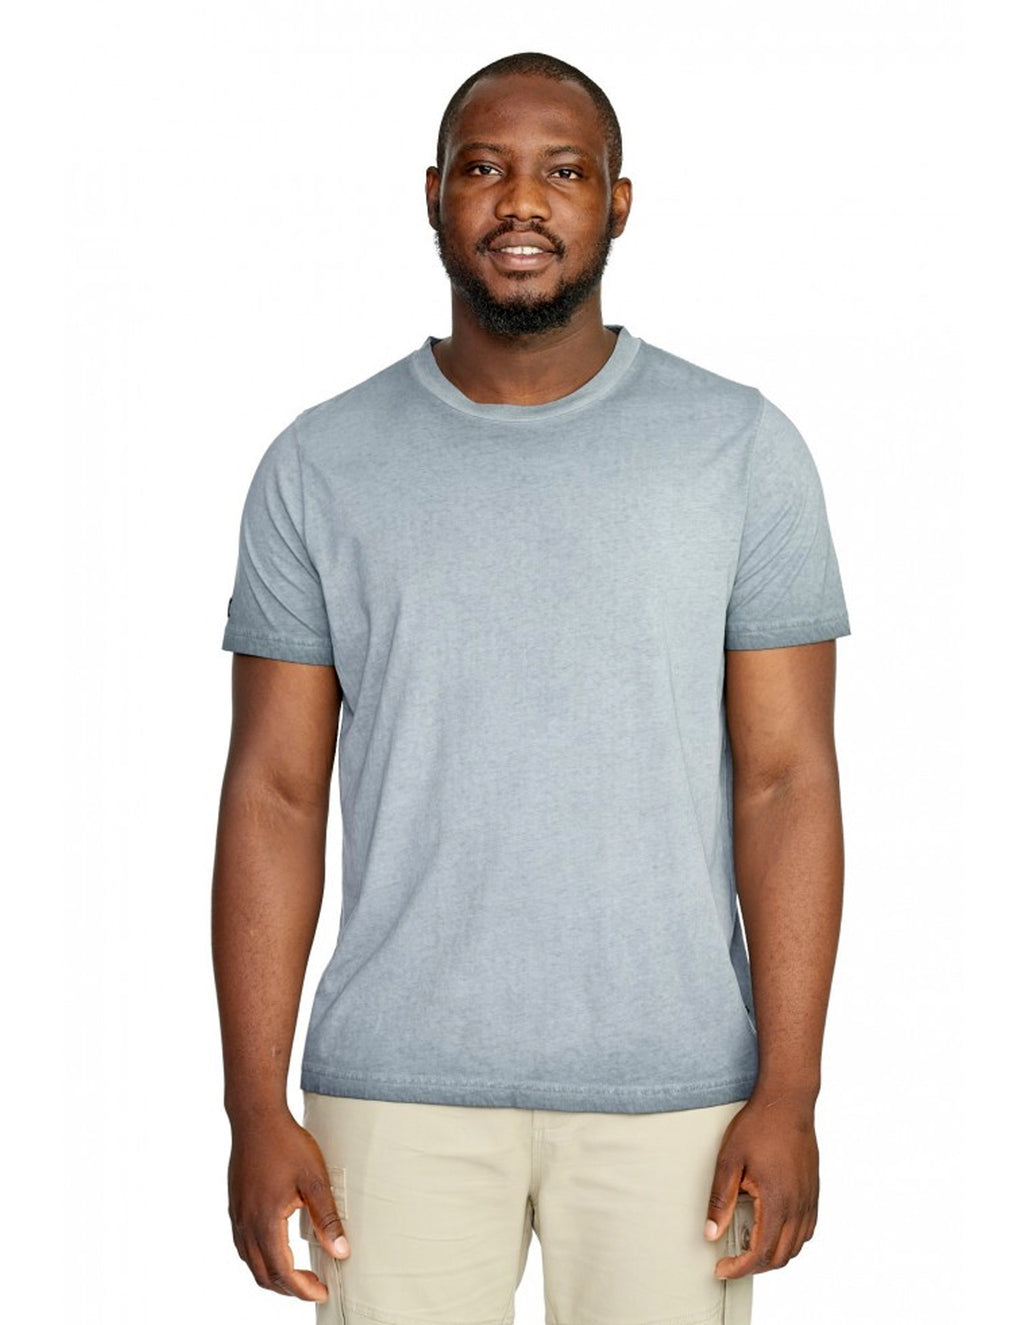 Hammersmith Washed Teal 0H81A3 Elston Crew Tee